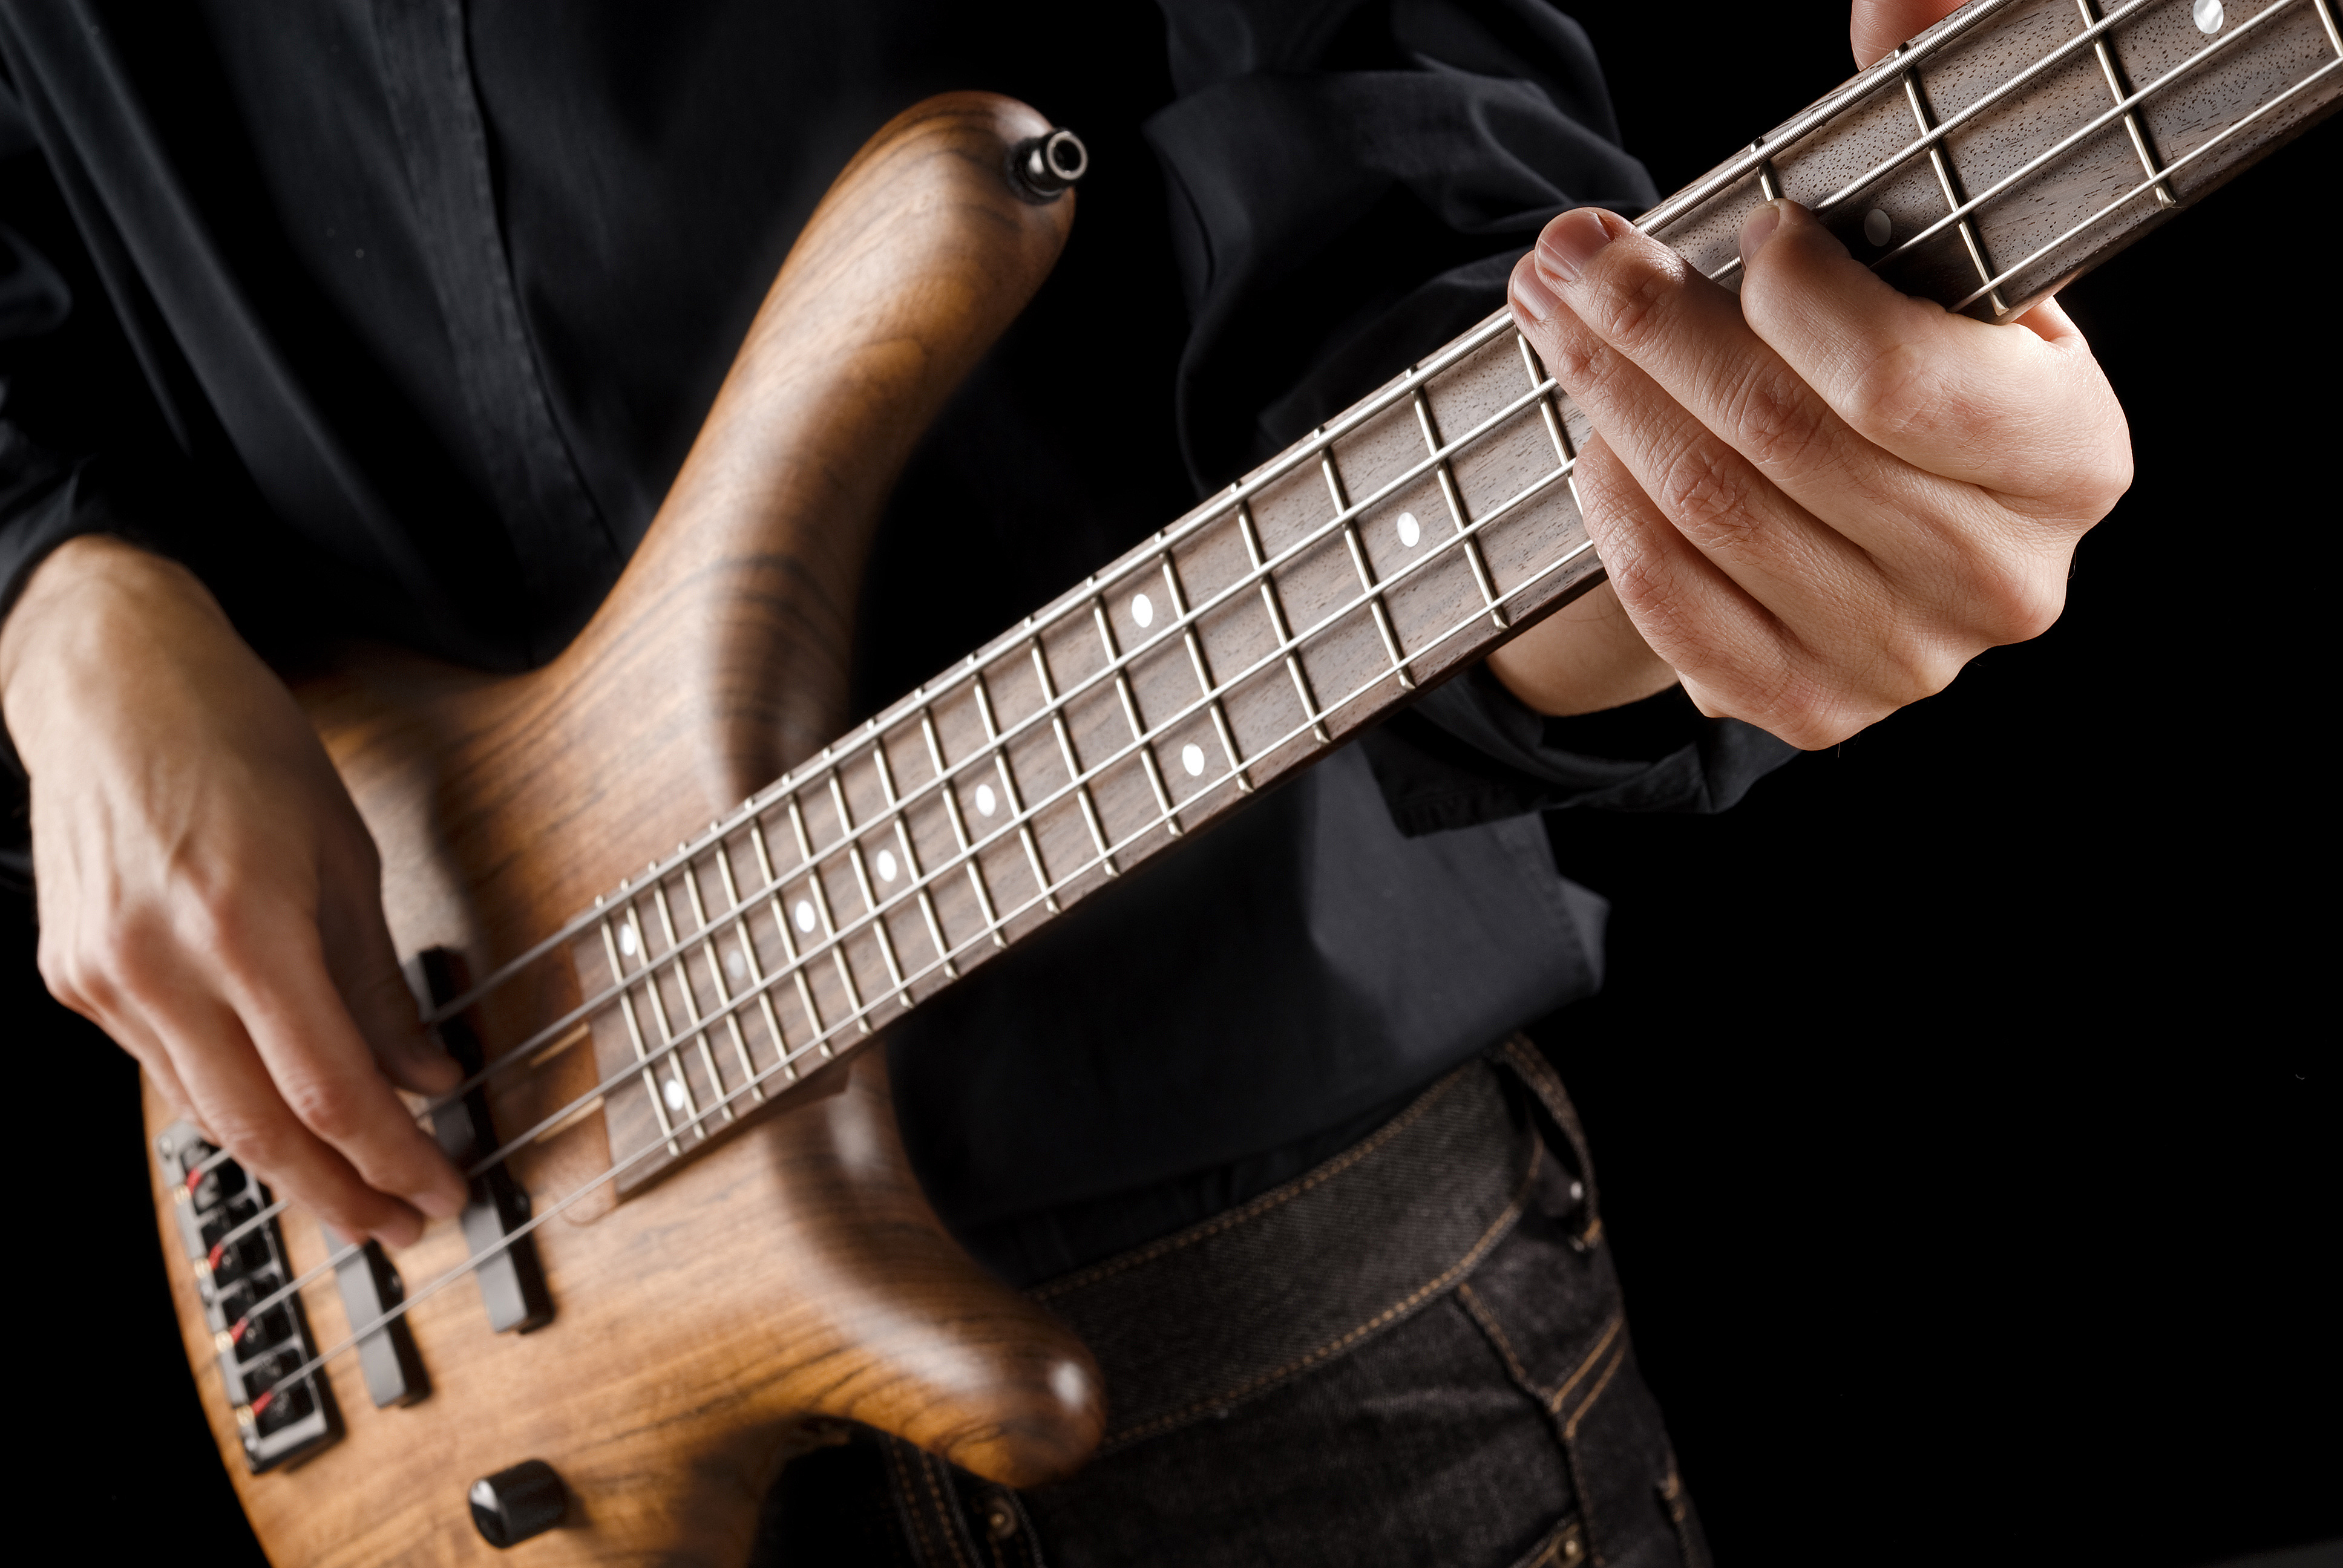 Playing the bass photo